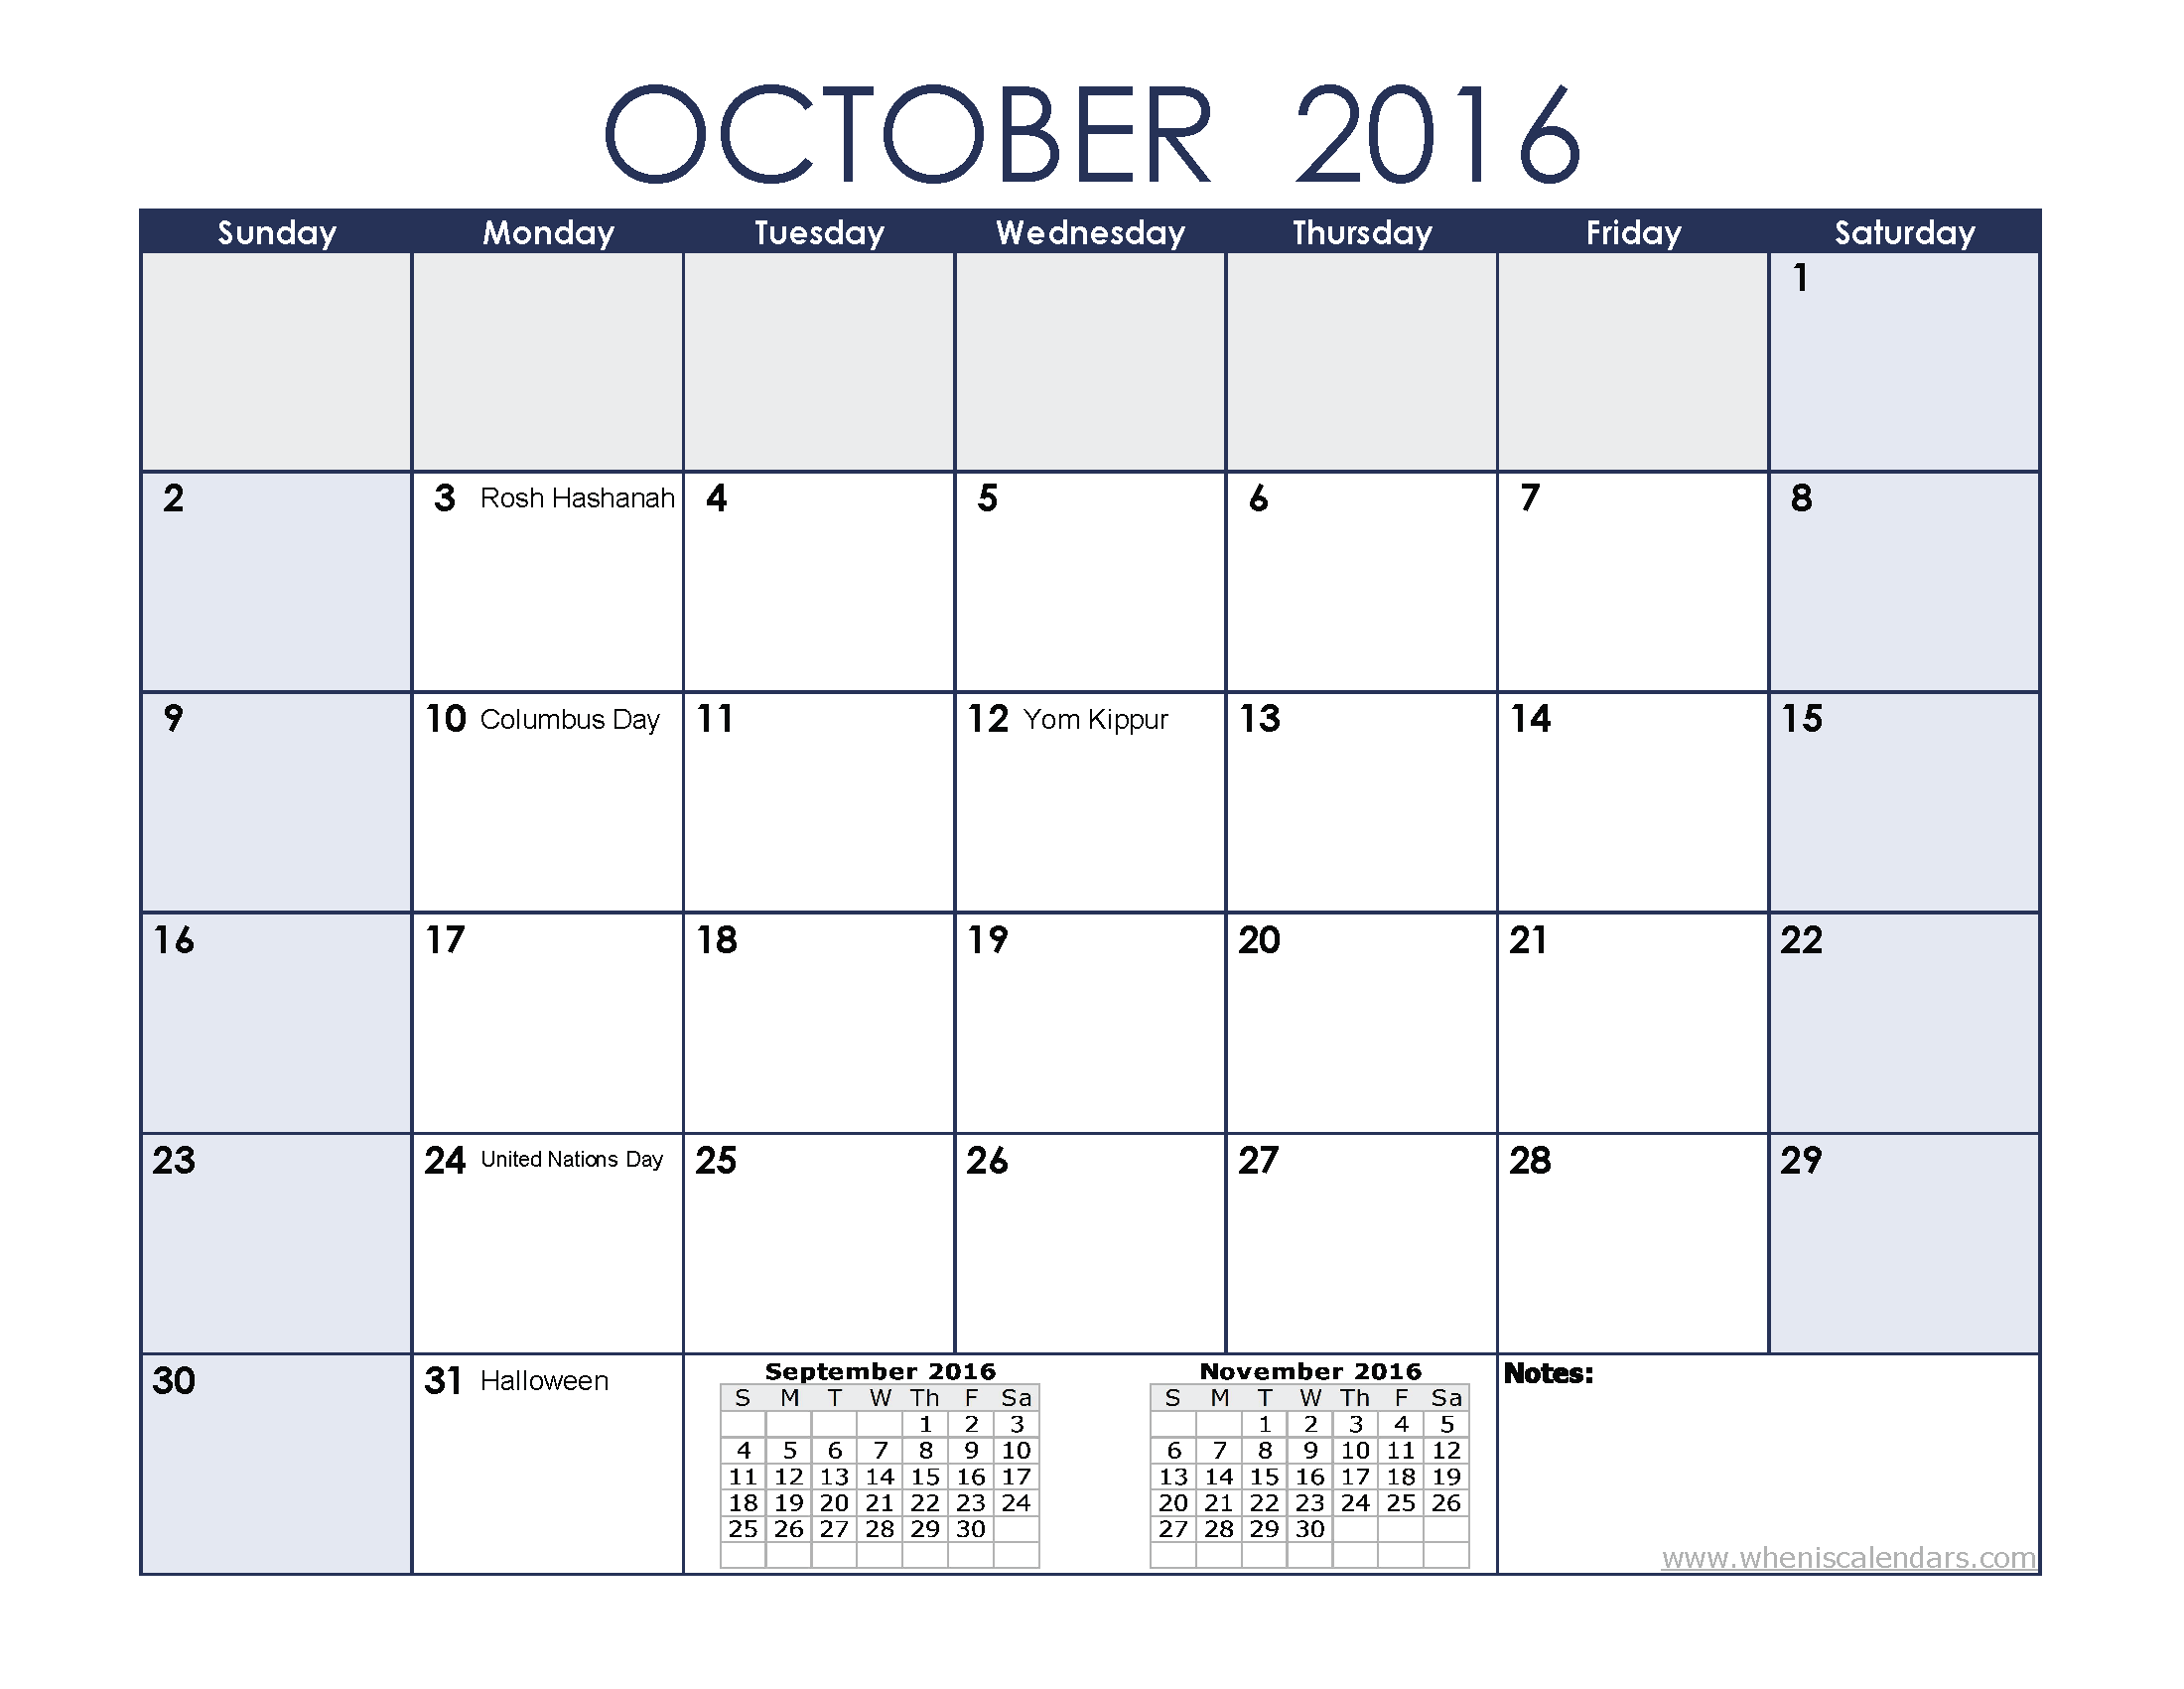 October 2016 Calendar Printable With Holidays